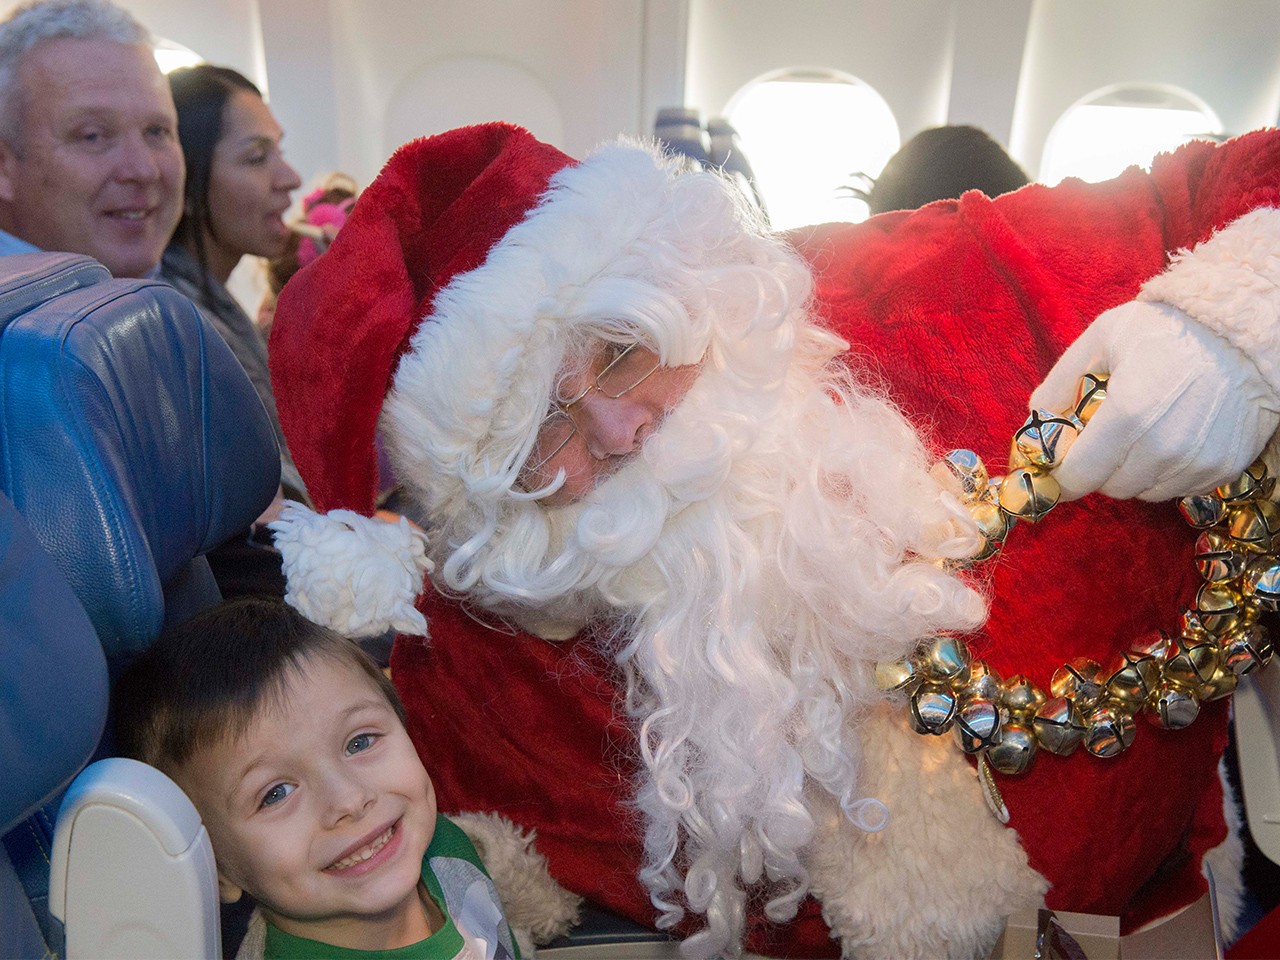 Santa taking a picture with a kid on an airplane